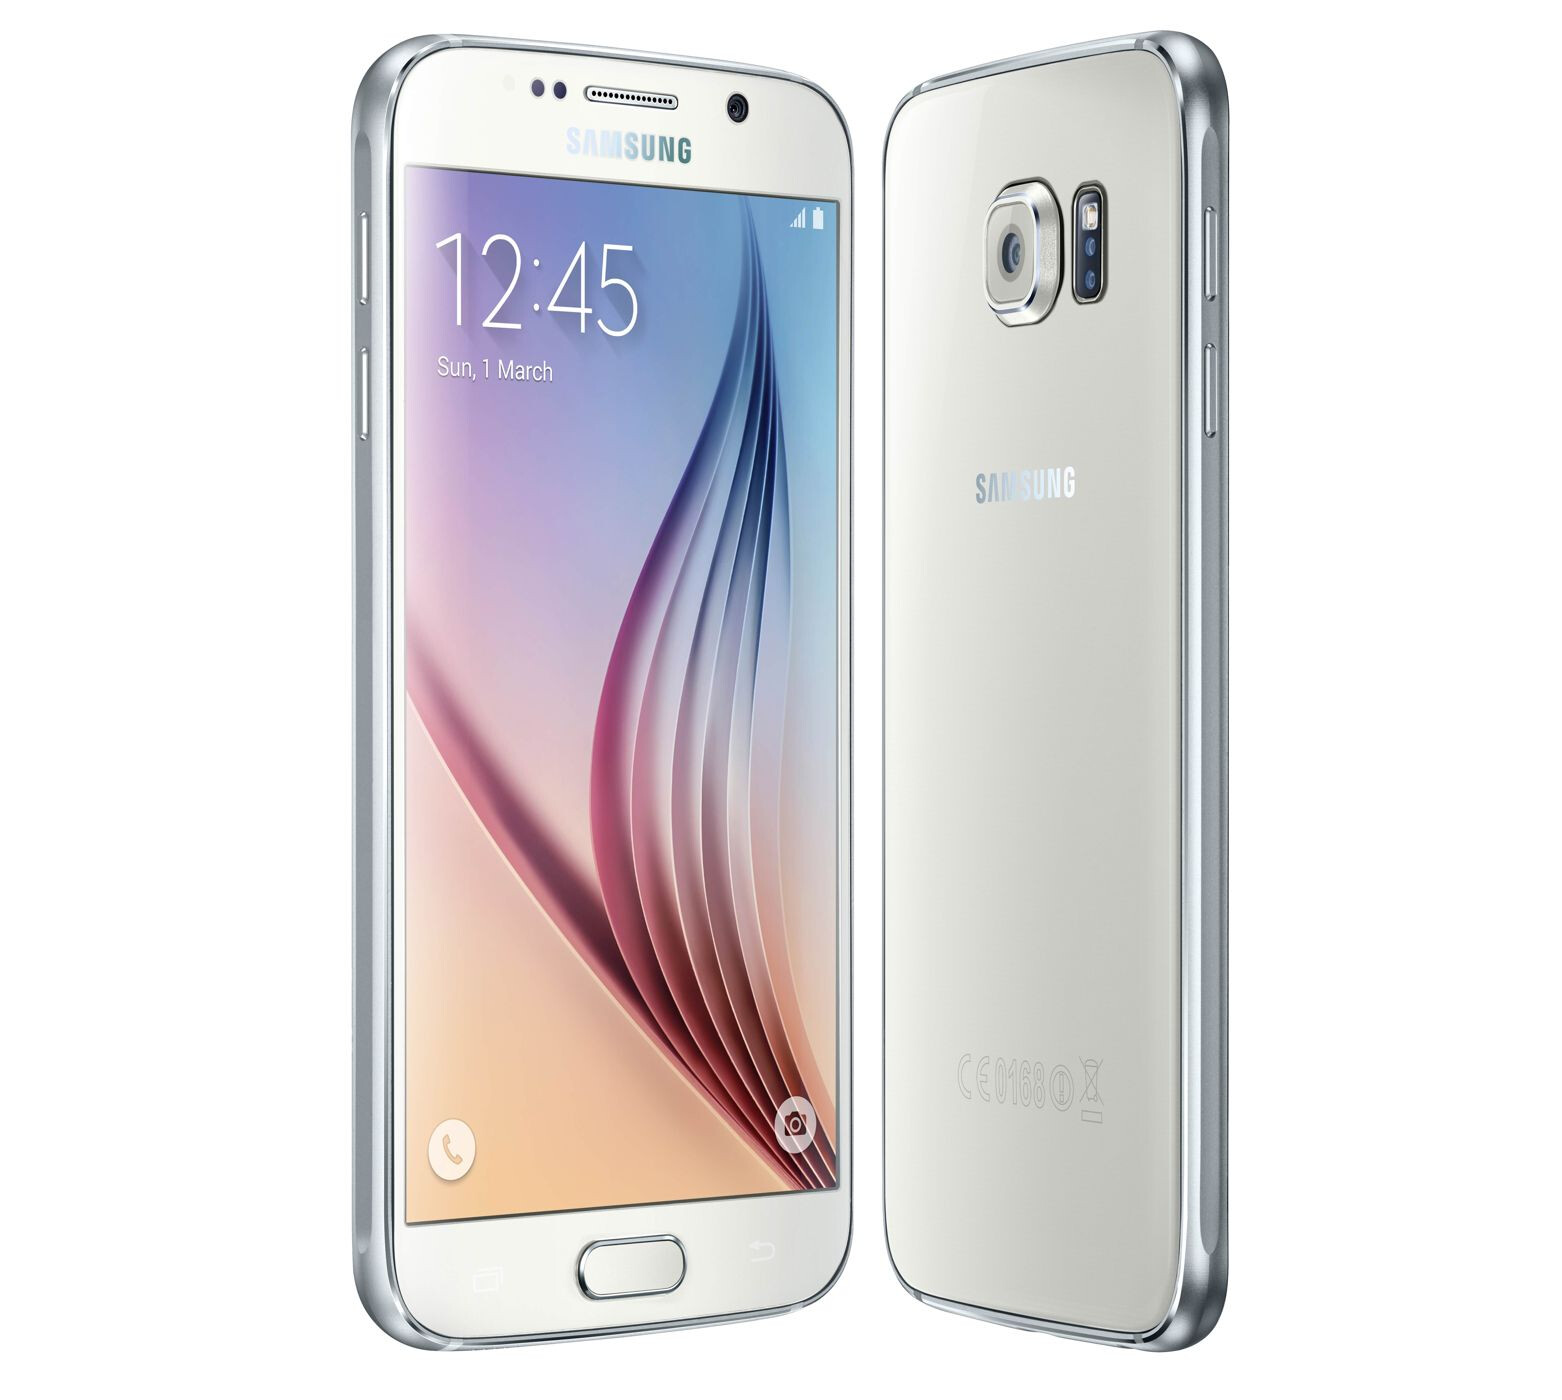 samsung galaxy s6 edge white. samsung galaxy s6, white pearl. - image from see all the s6 and edge color variants here which one do you like best? l